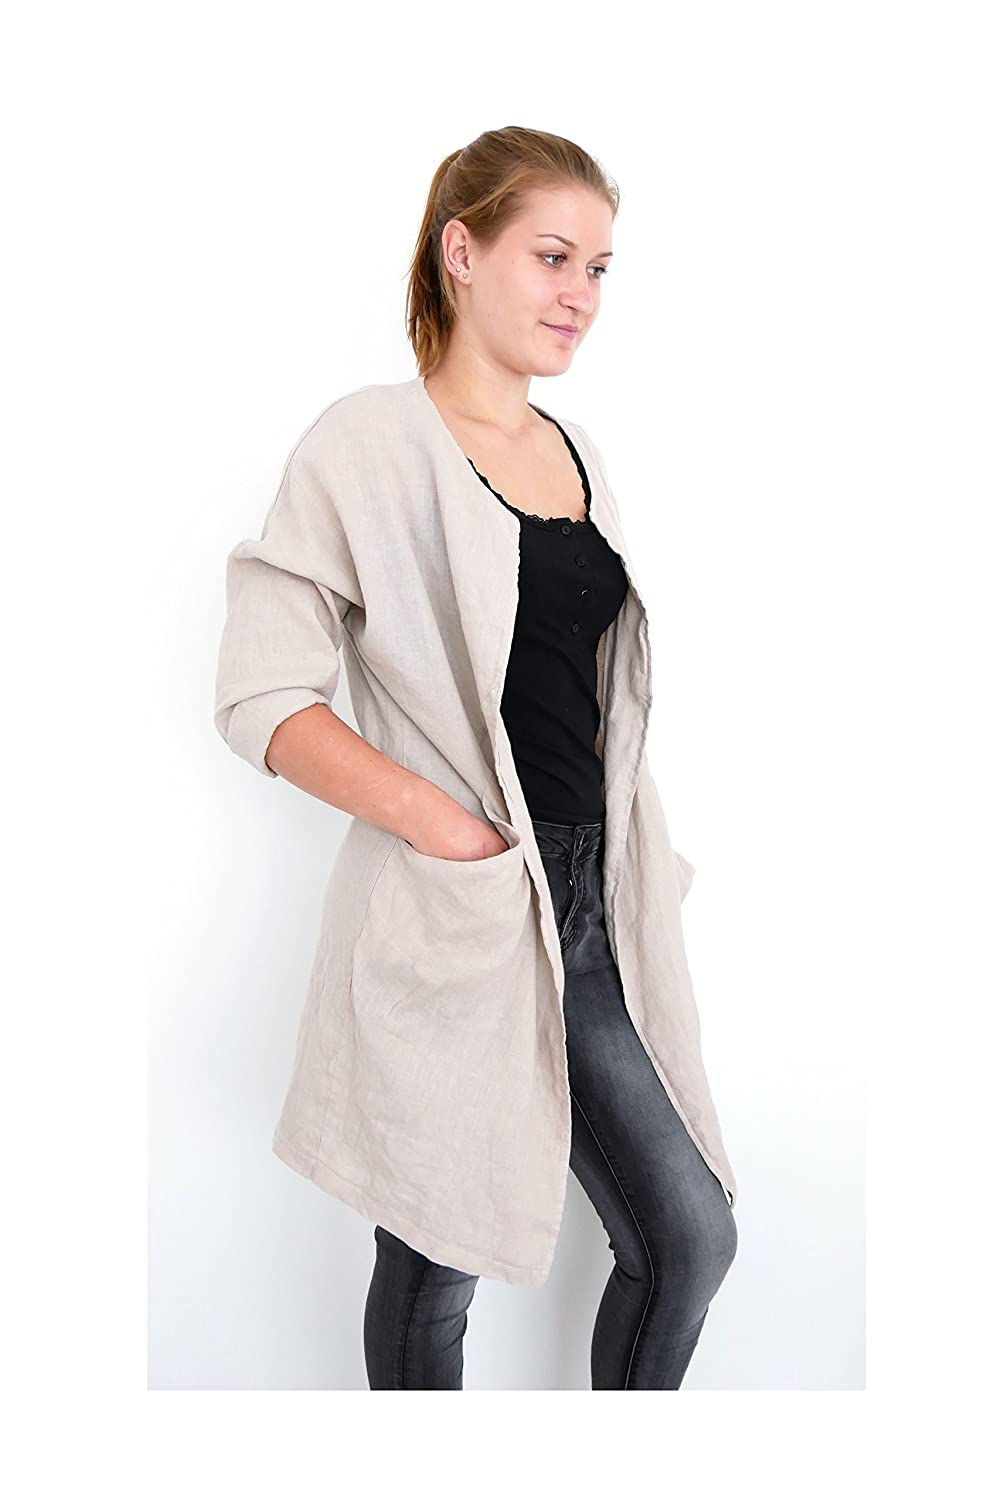 ★ Wendy Trendy Basic Casual Leinen Trench Mantel Open front Langarm Weste Cardigan fly away Long Jacke ecru sand beige L XL 40 42 44 (8724)